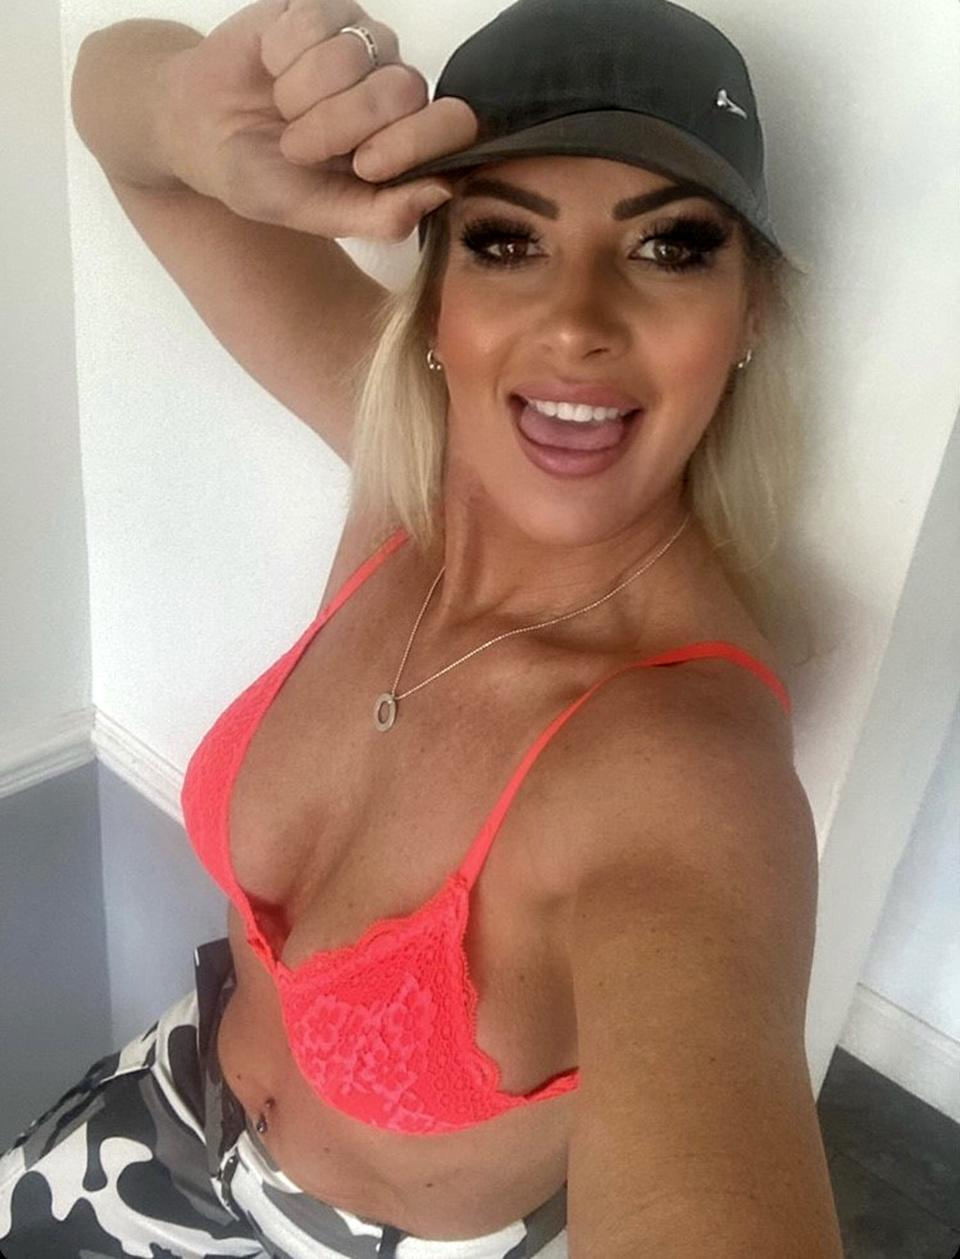 52 year old tara sex life best its ever been